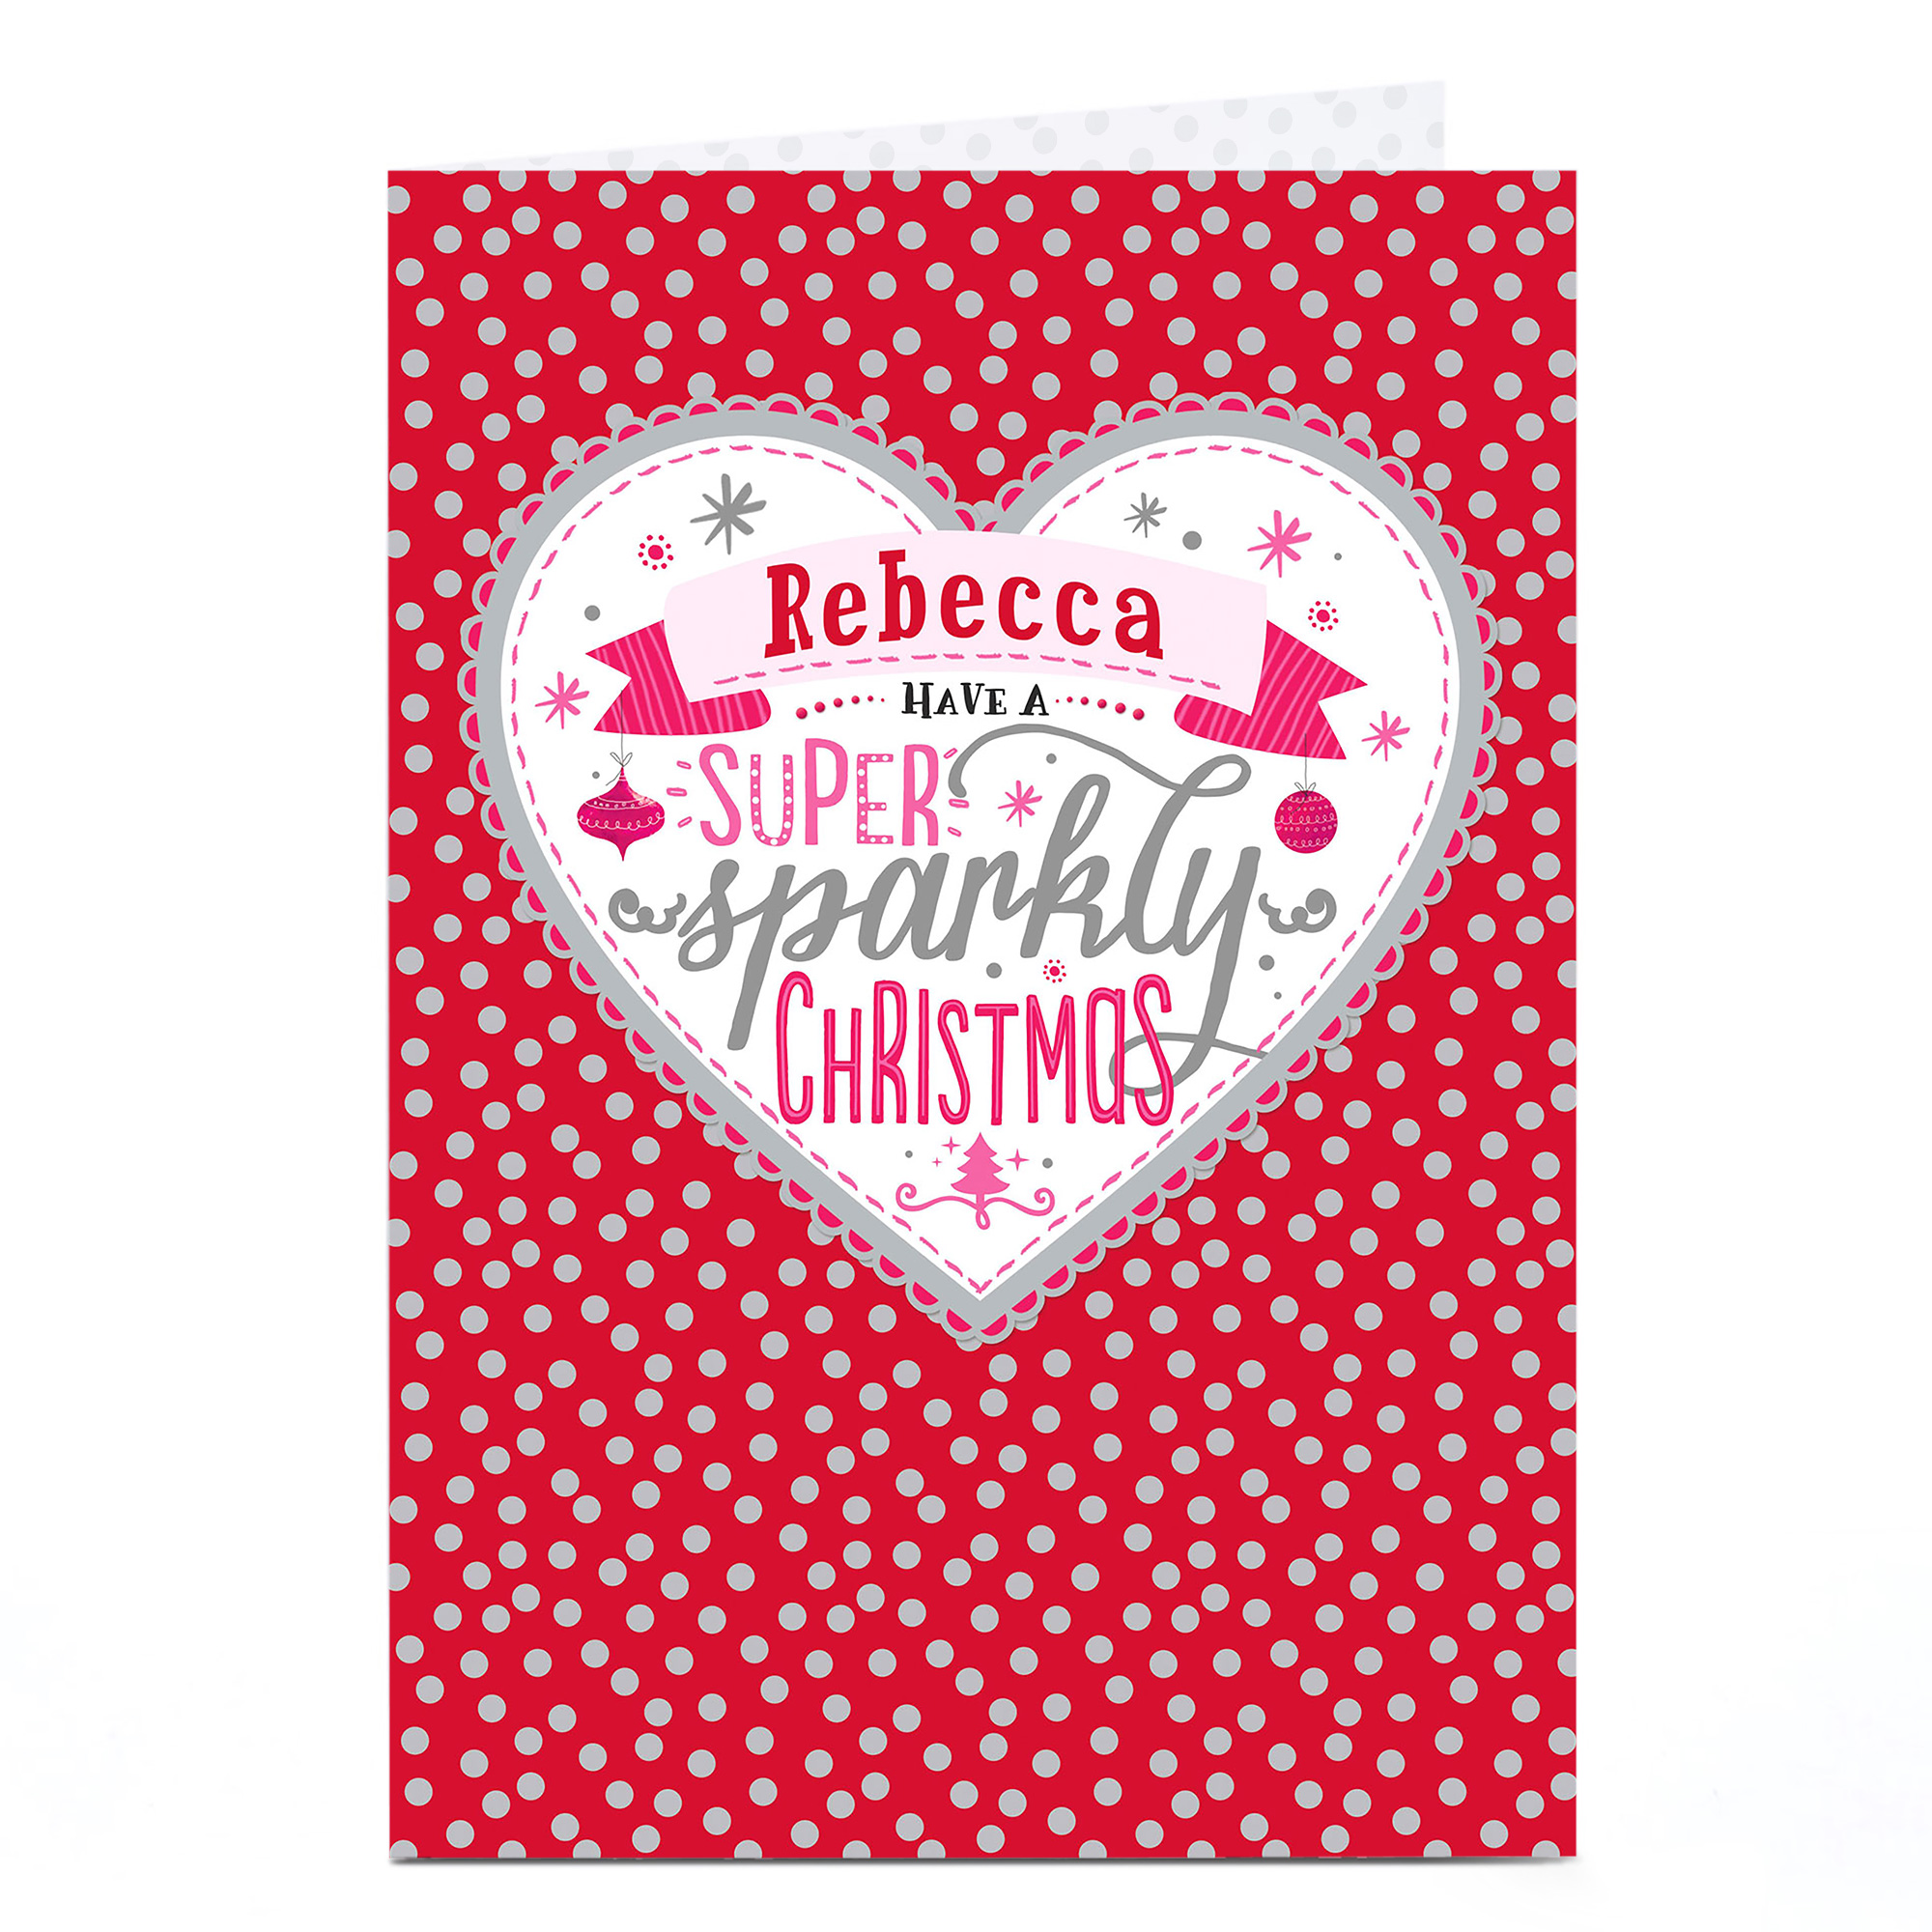 Personalised Christmas Card - Super Sparkly